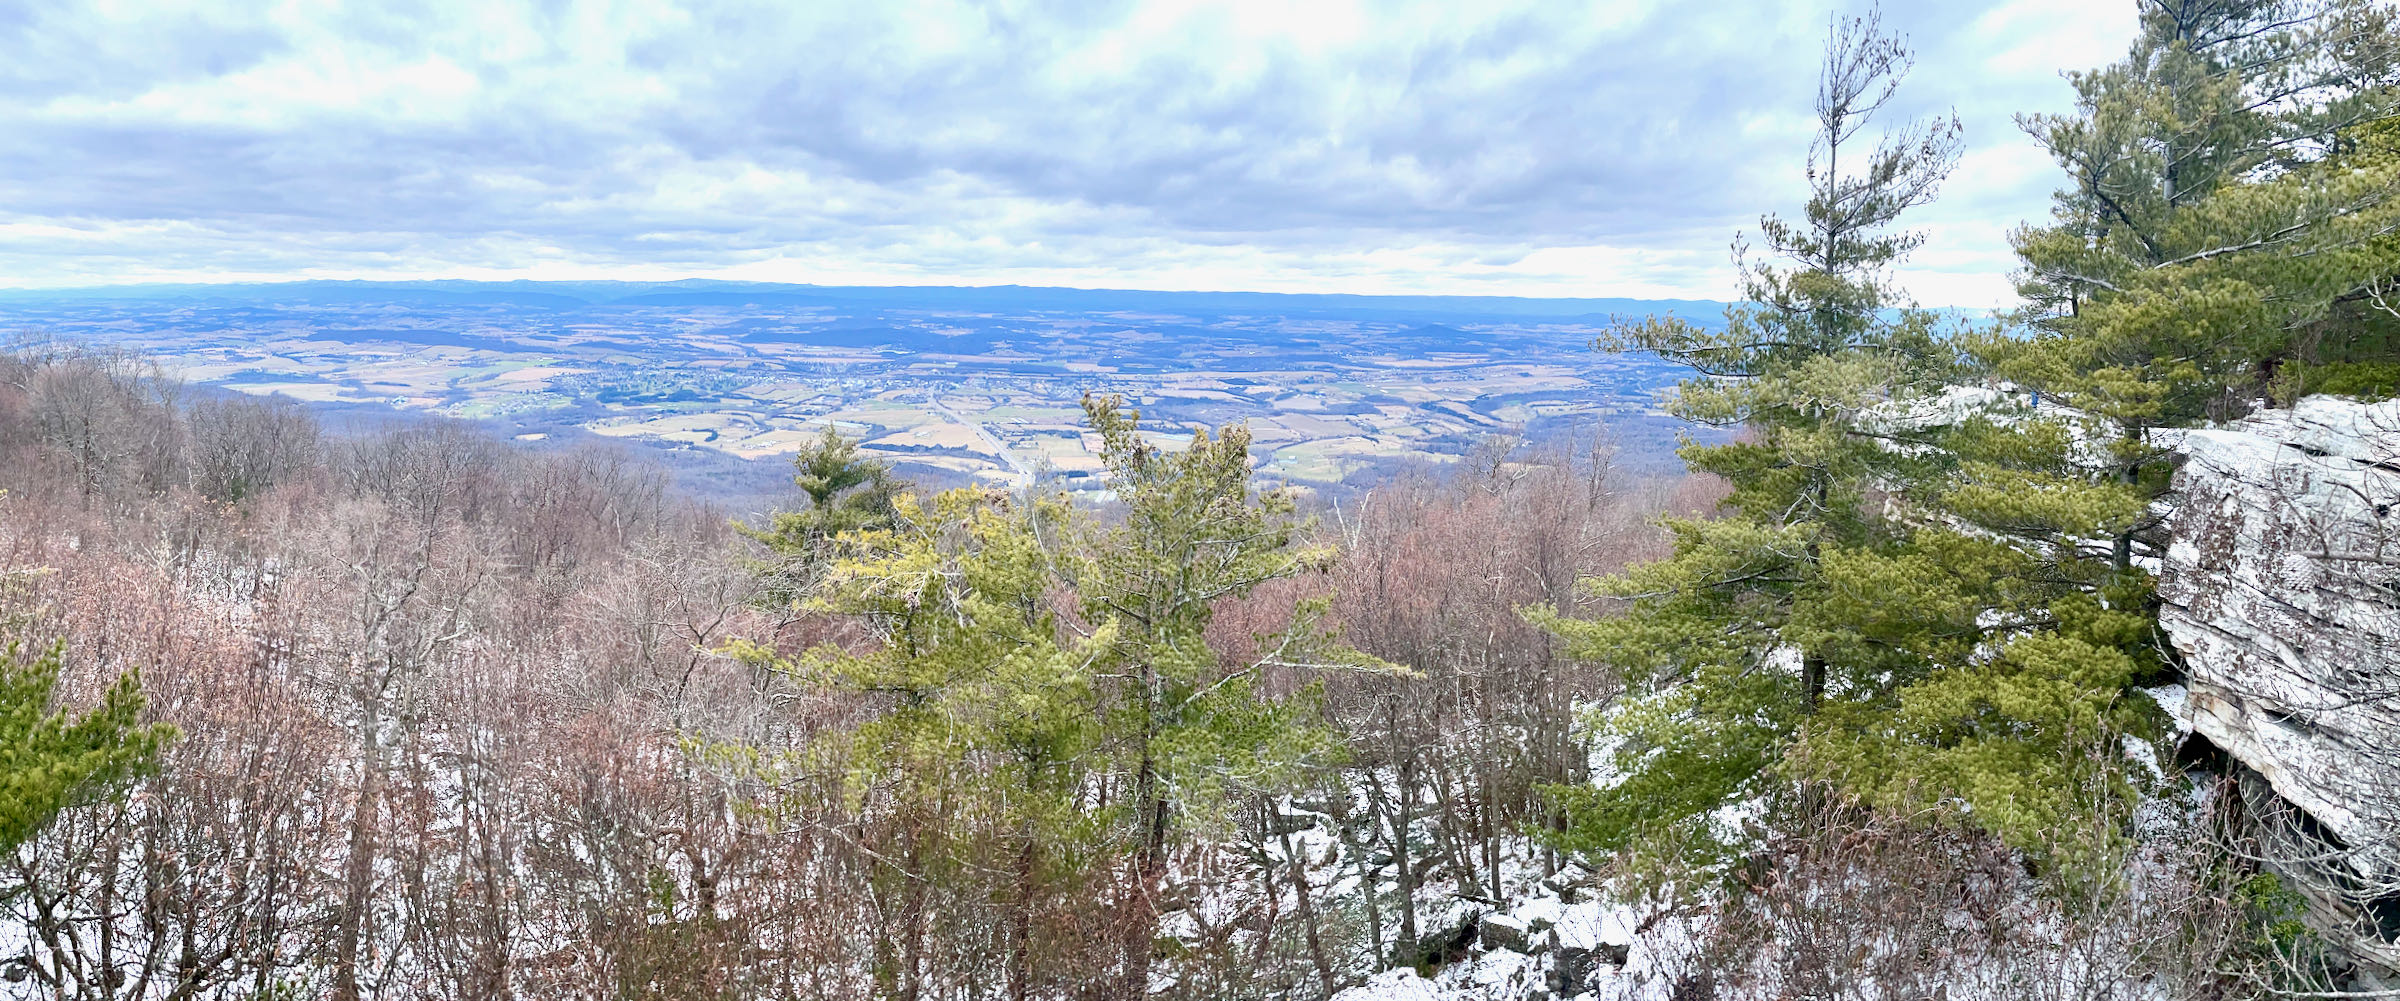 View of the Shenandoah Valley from Bird Knob